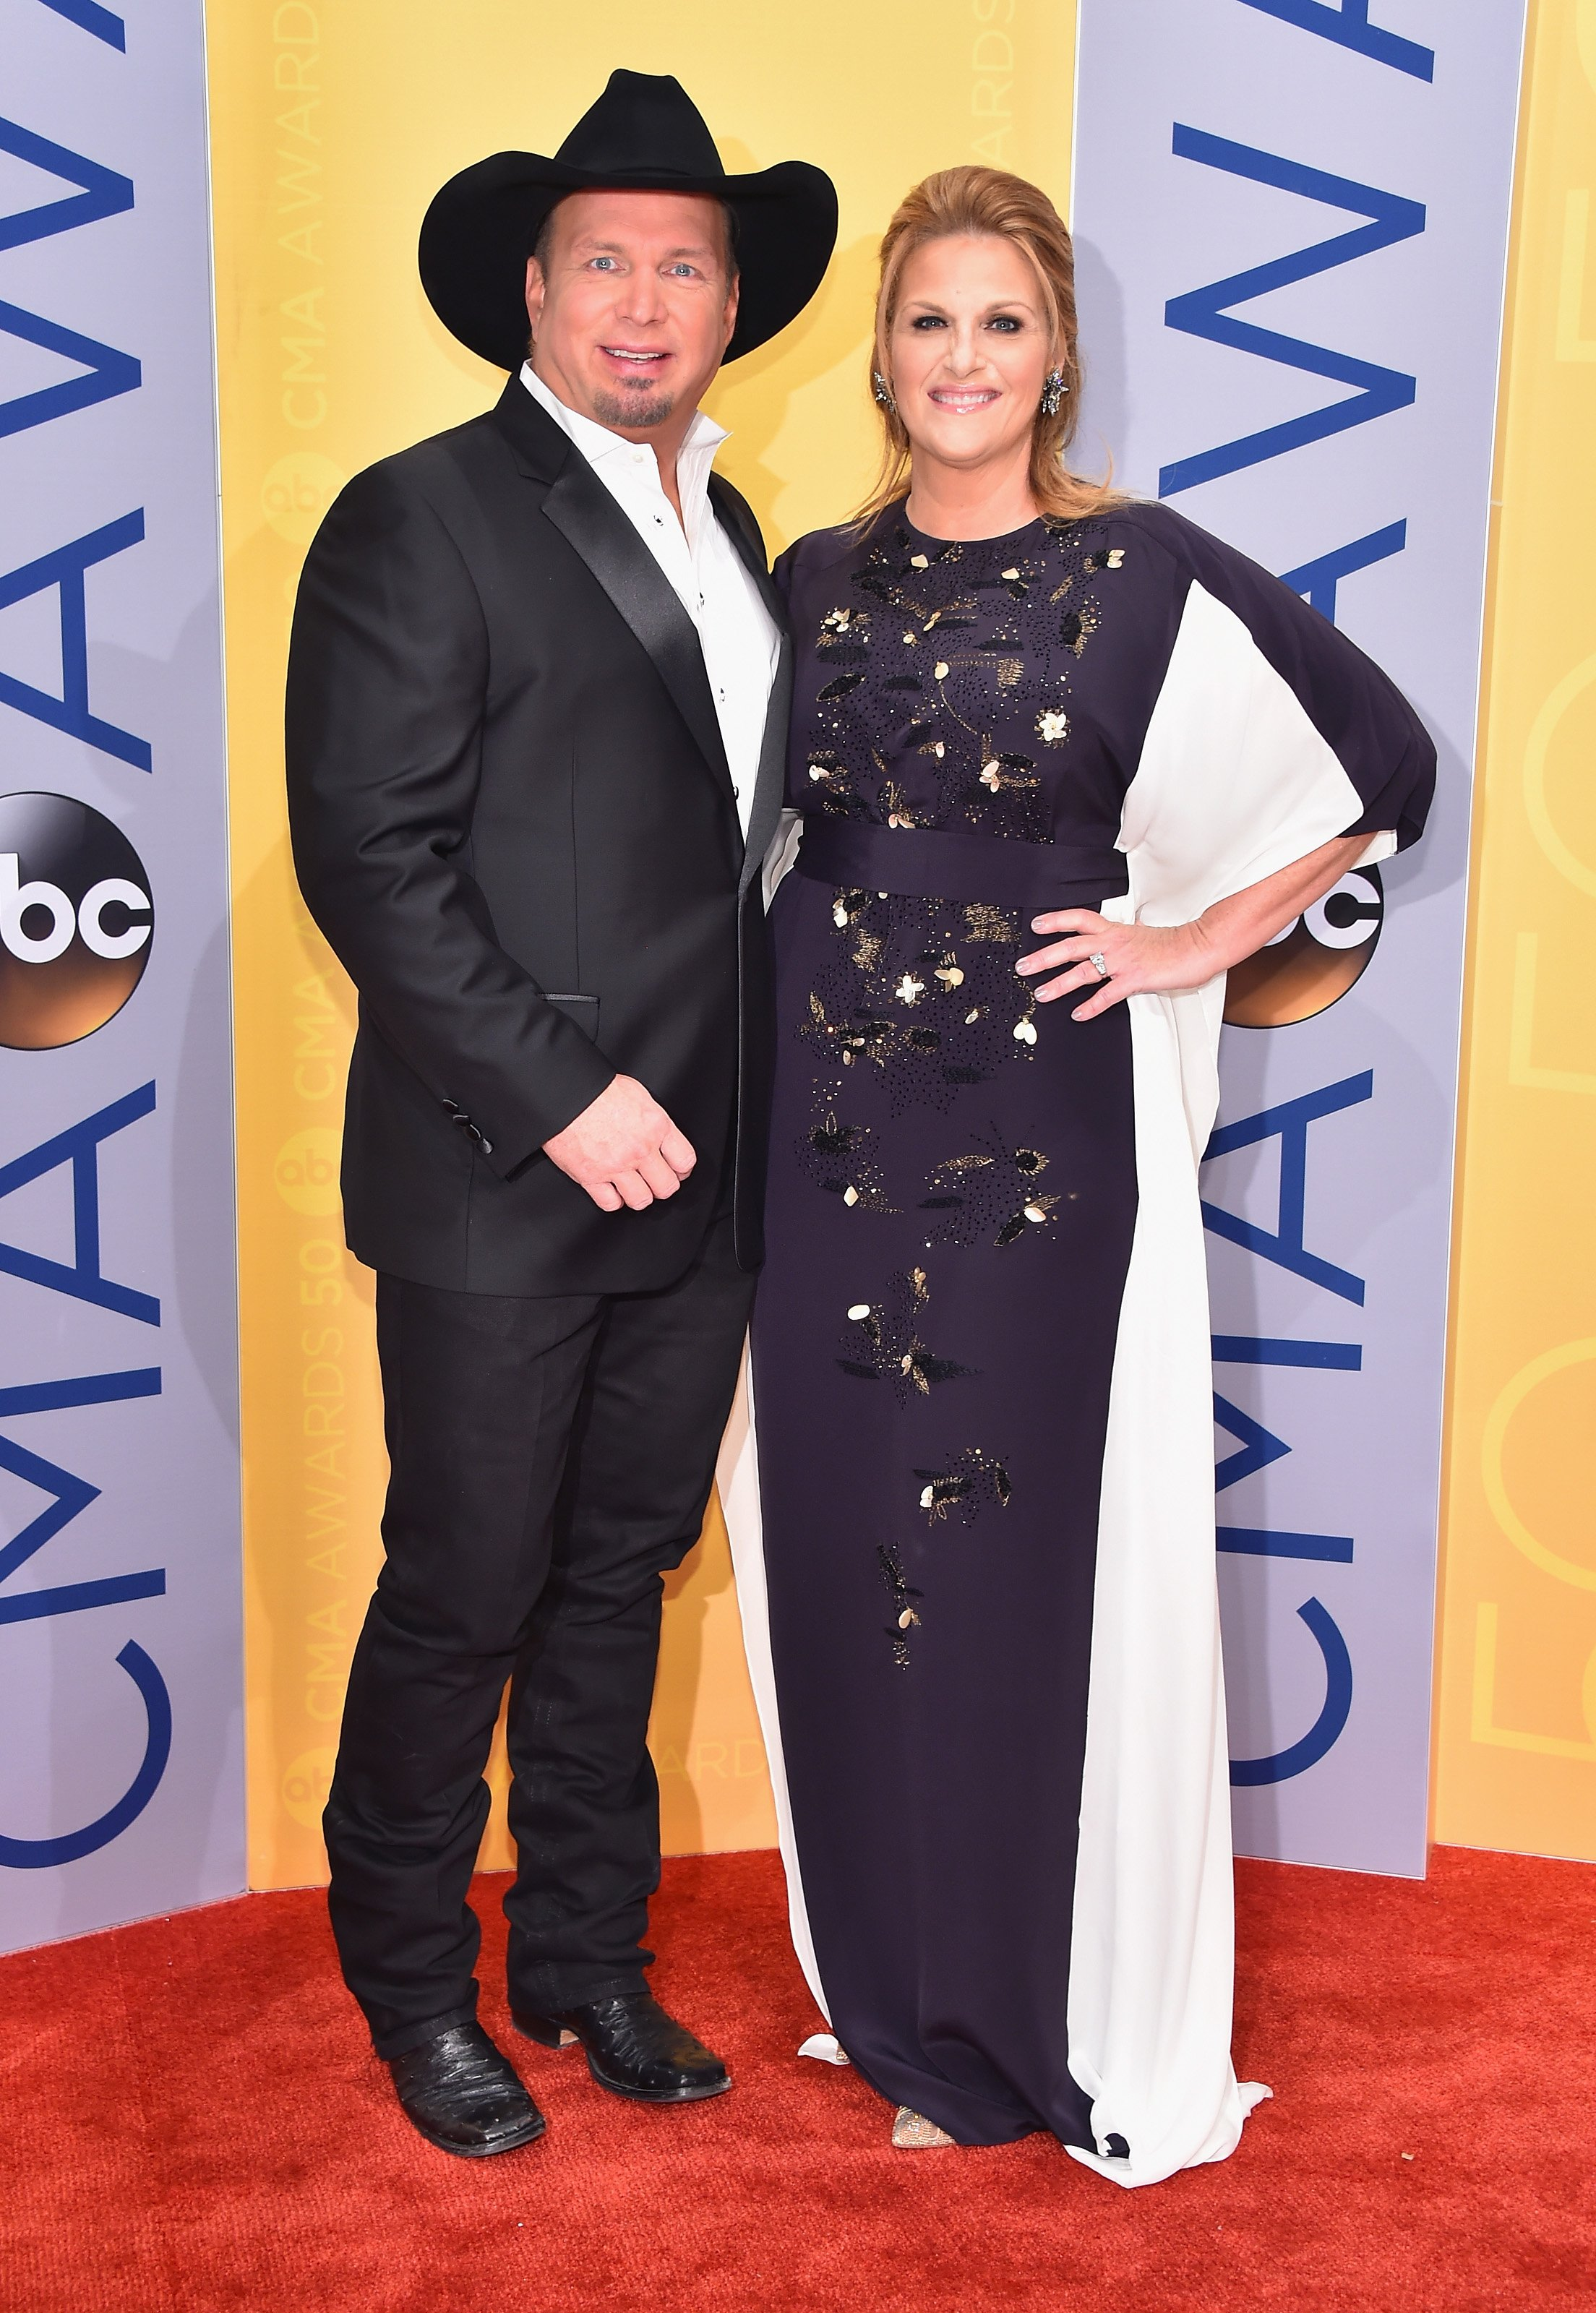 Garth Brooks and Trisha Yearwood attend the 50th annual CMA Awards at the Bridgestone Arena on November 2, 2016 in Nashville